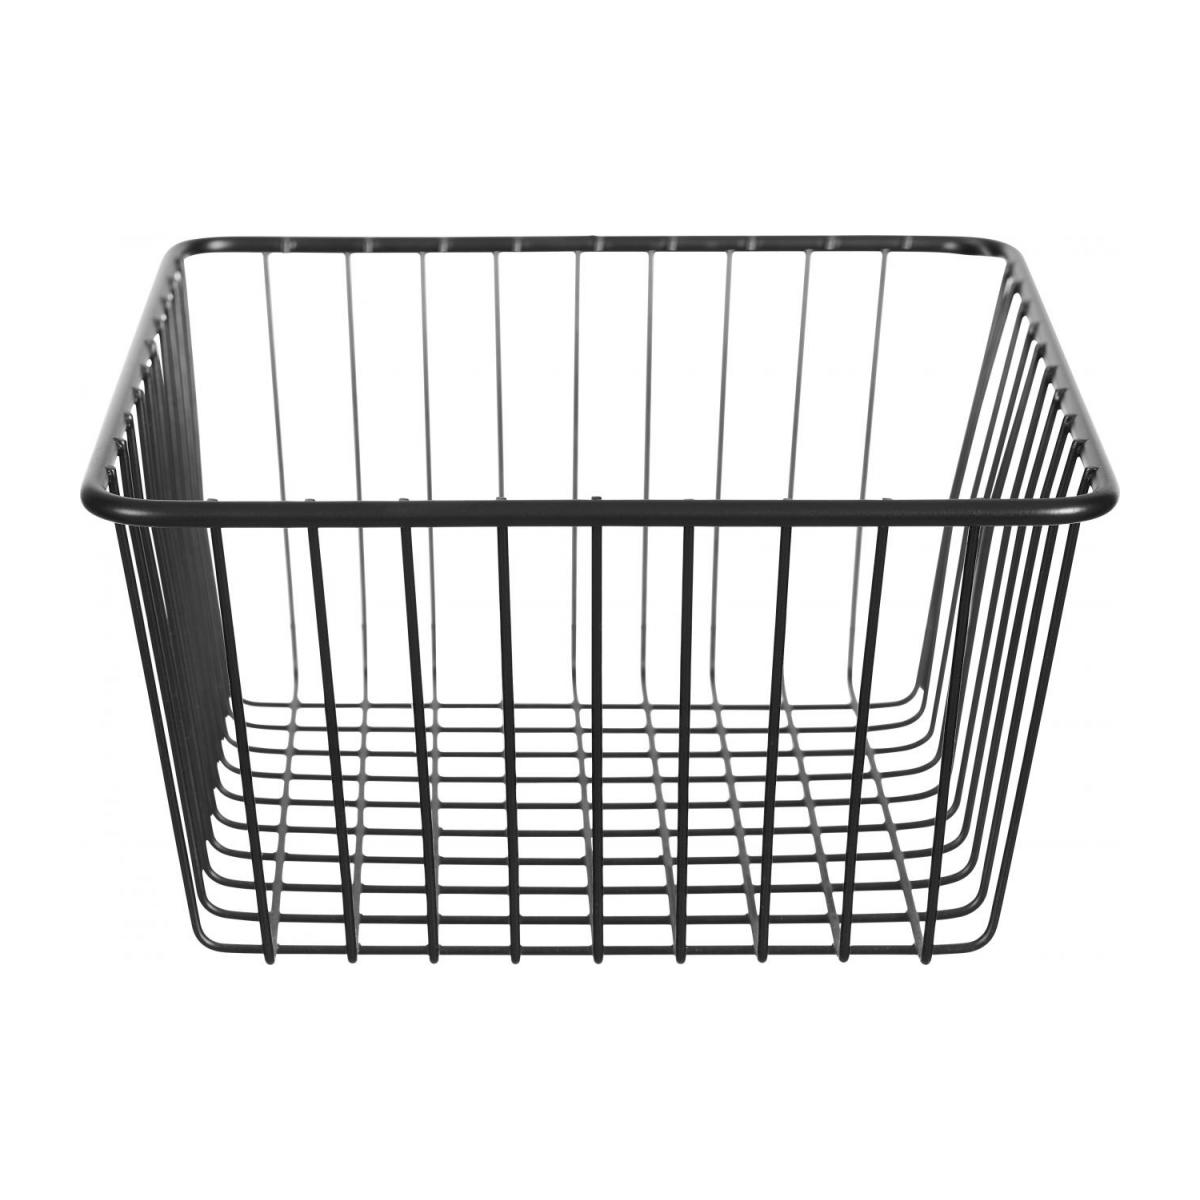 Metal Bathroom Basket Set of 3 n°5